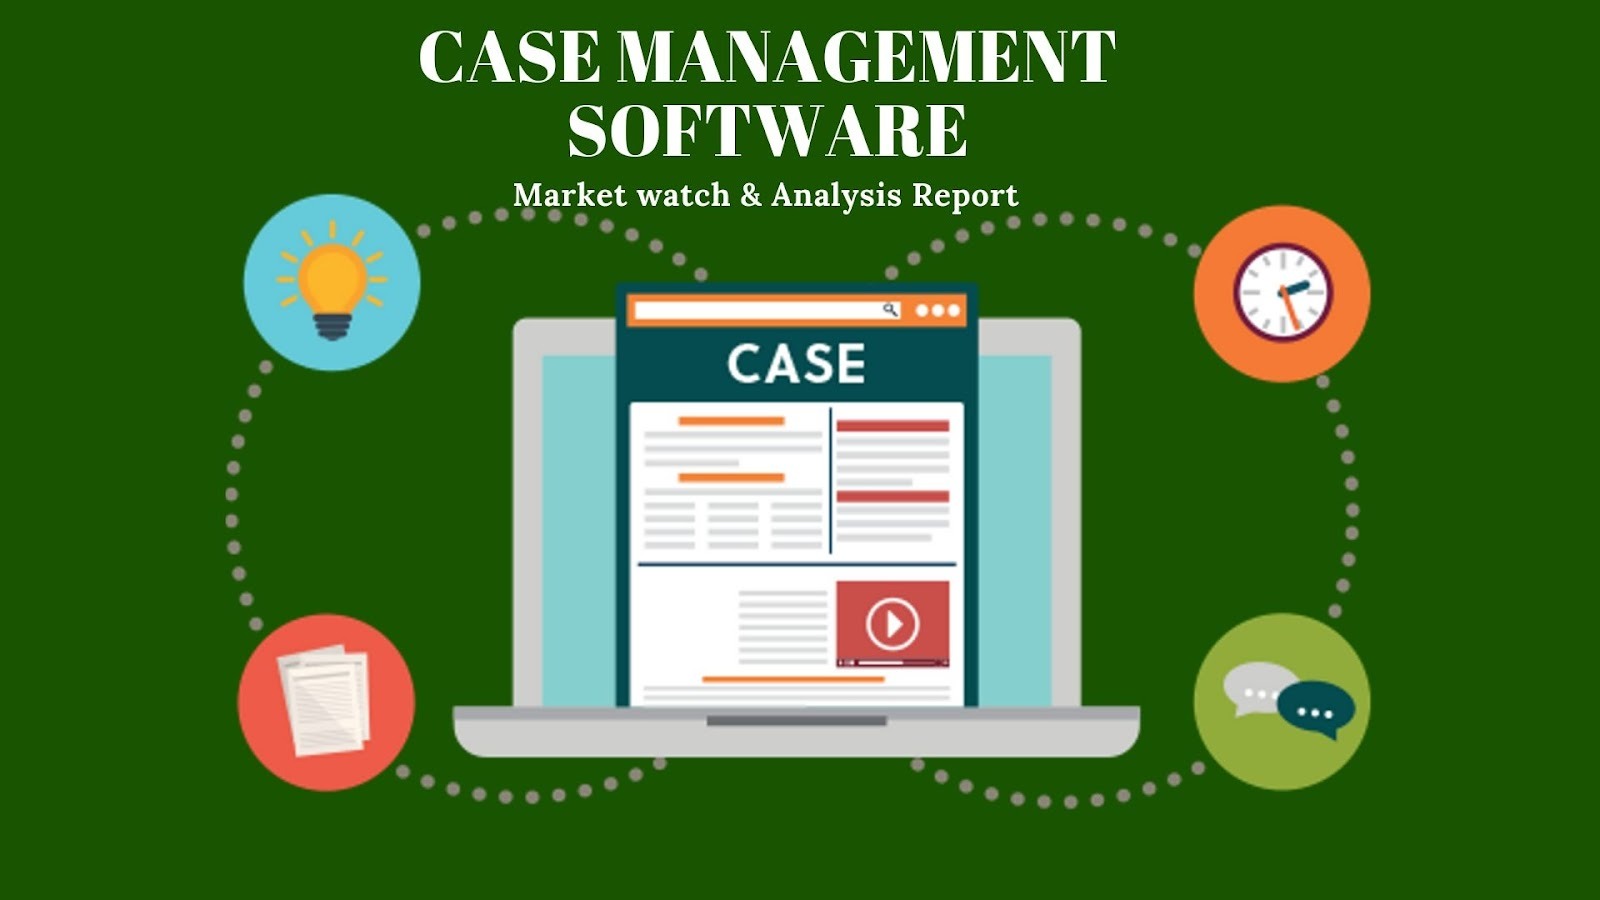 Case Management Software Market Analysis and Overview